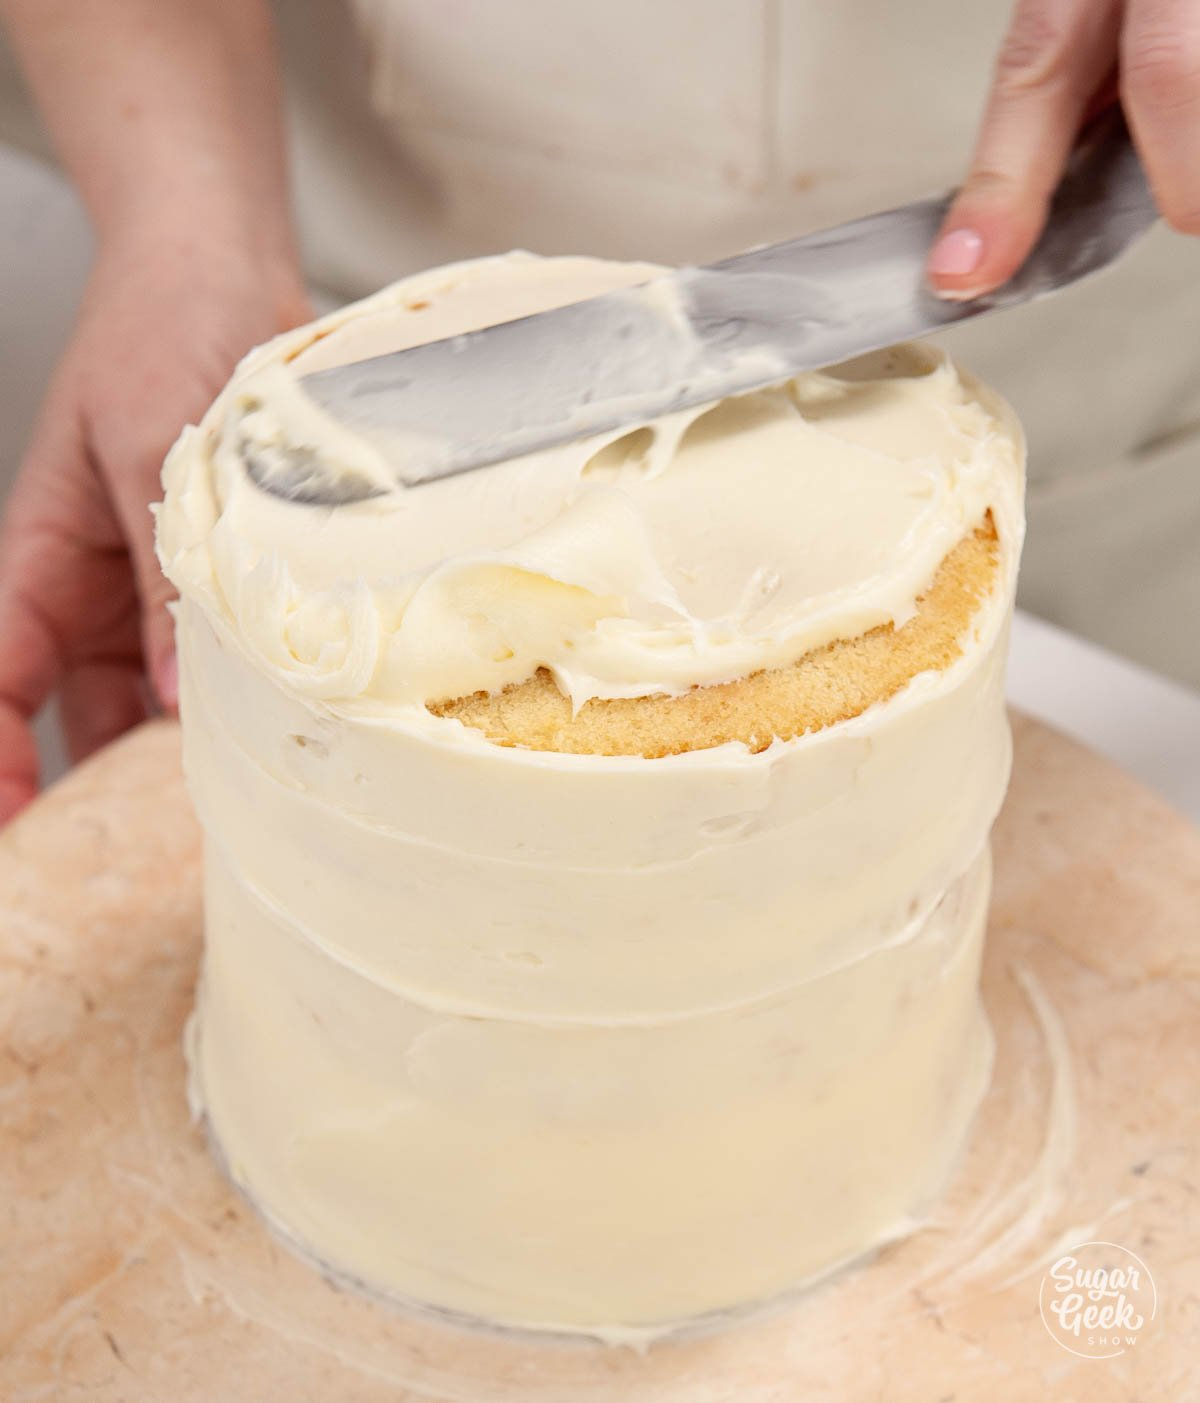 covering the lemon cake in a crumbcoat